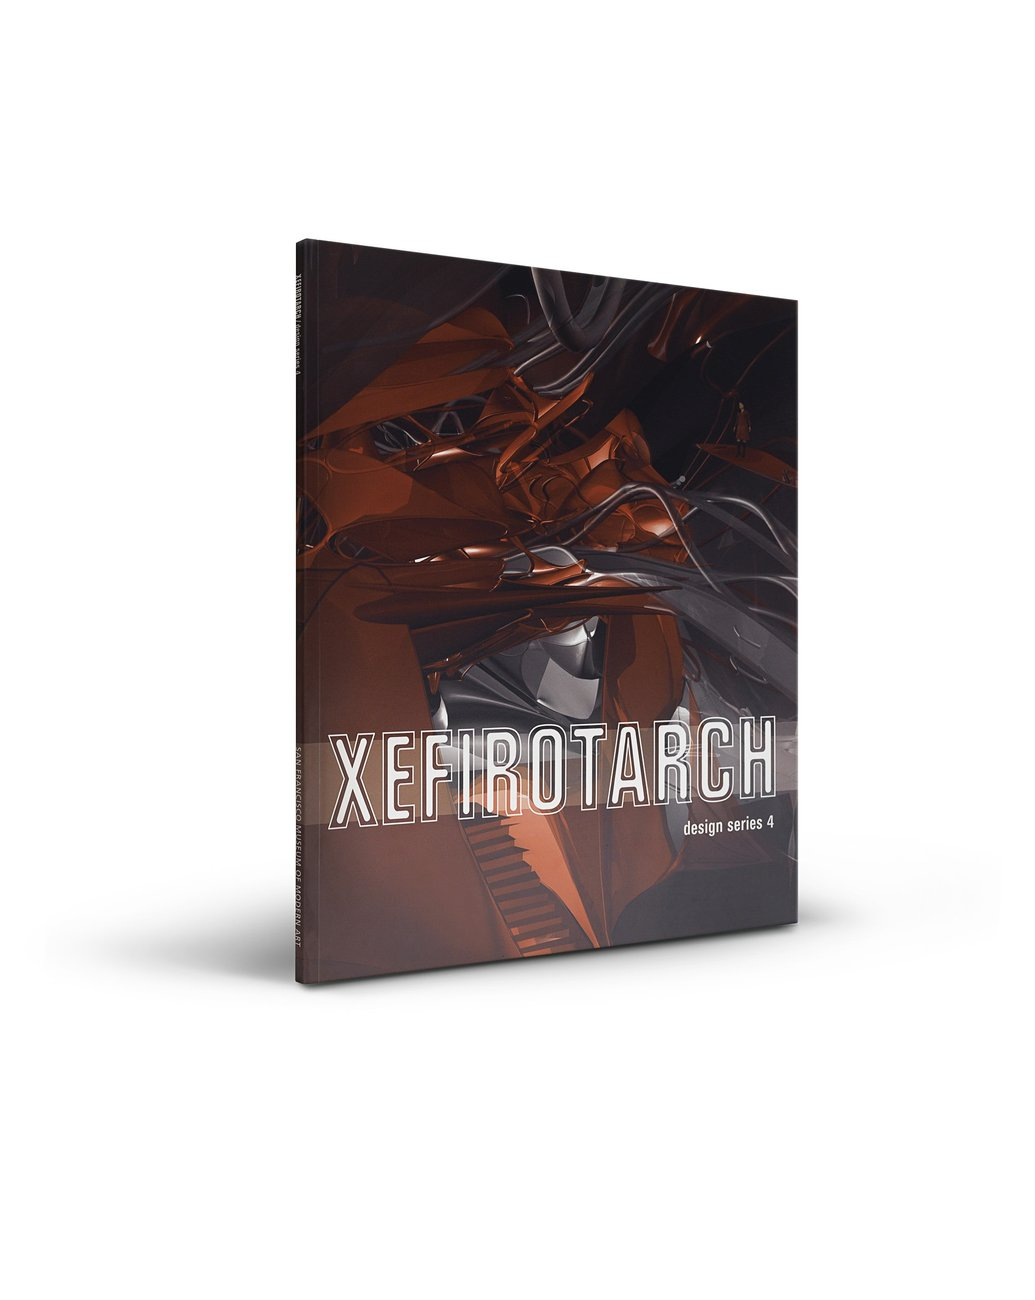 Xefirotarch: design series 4 publication cover